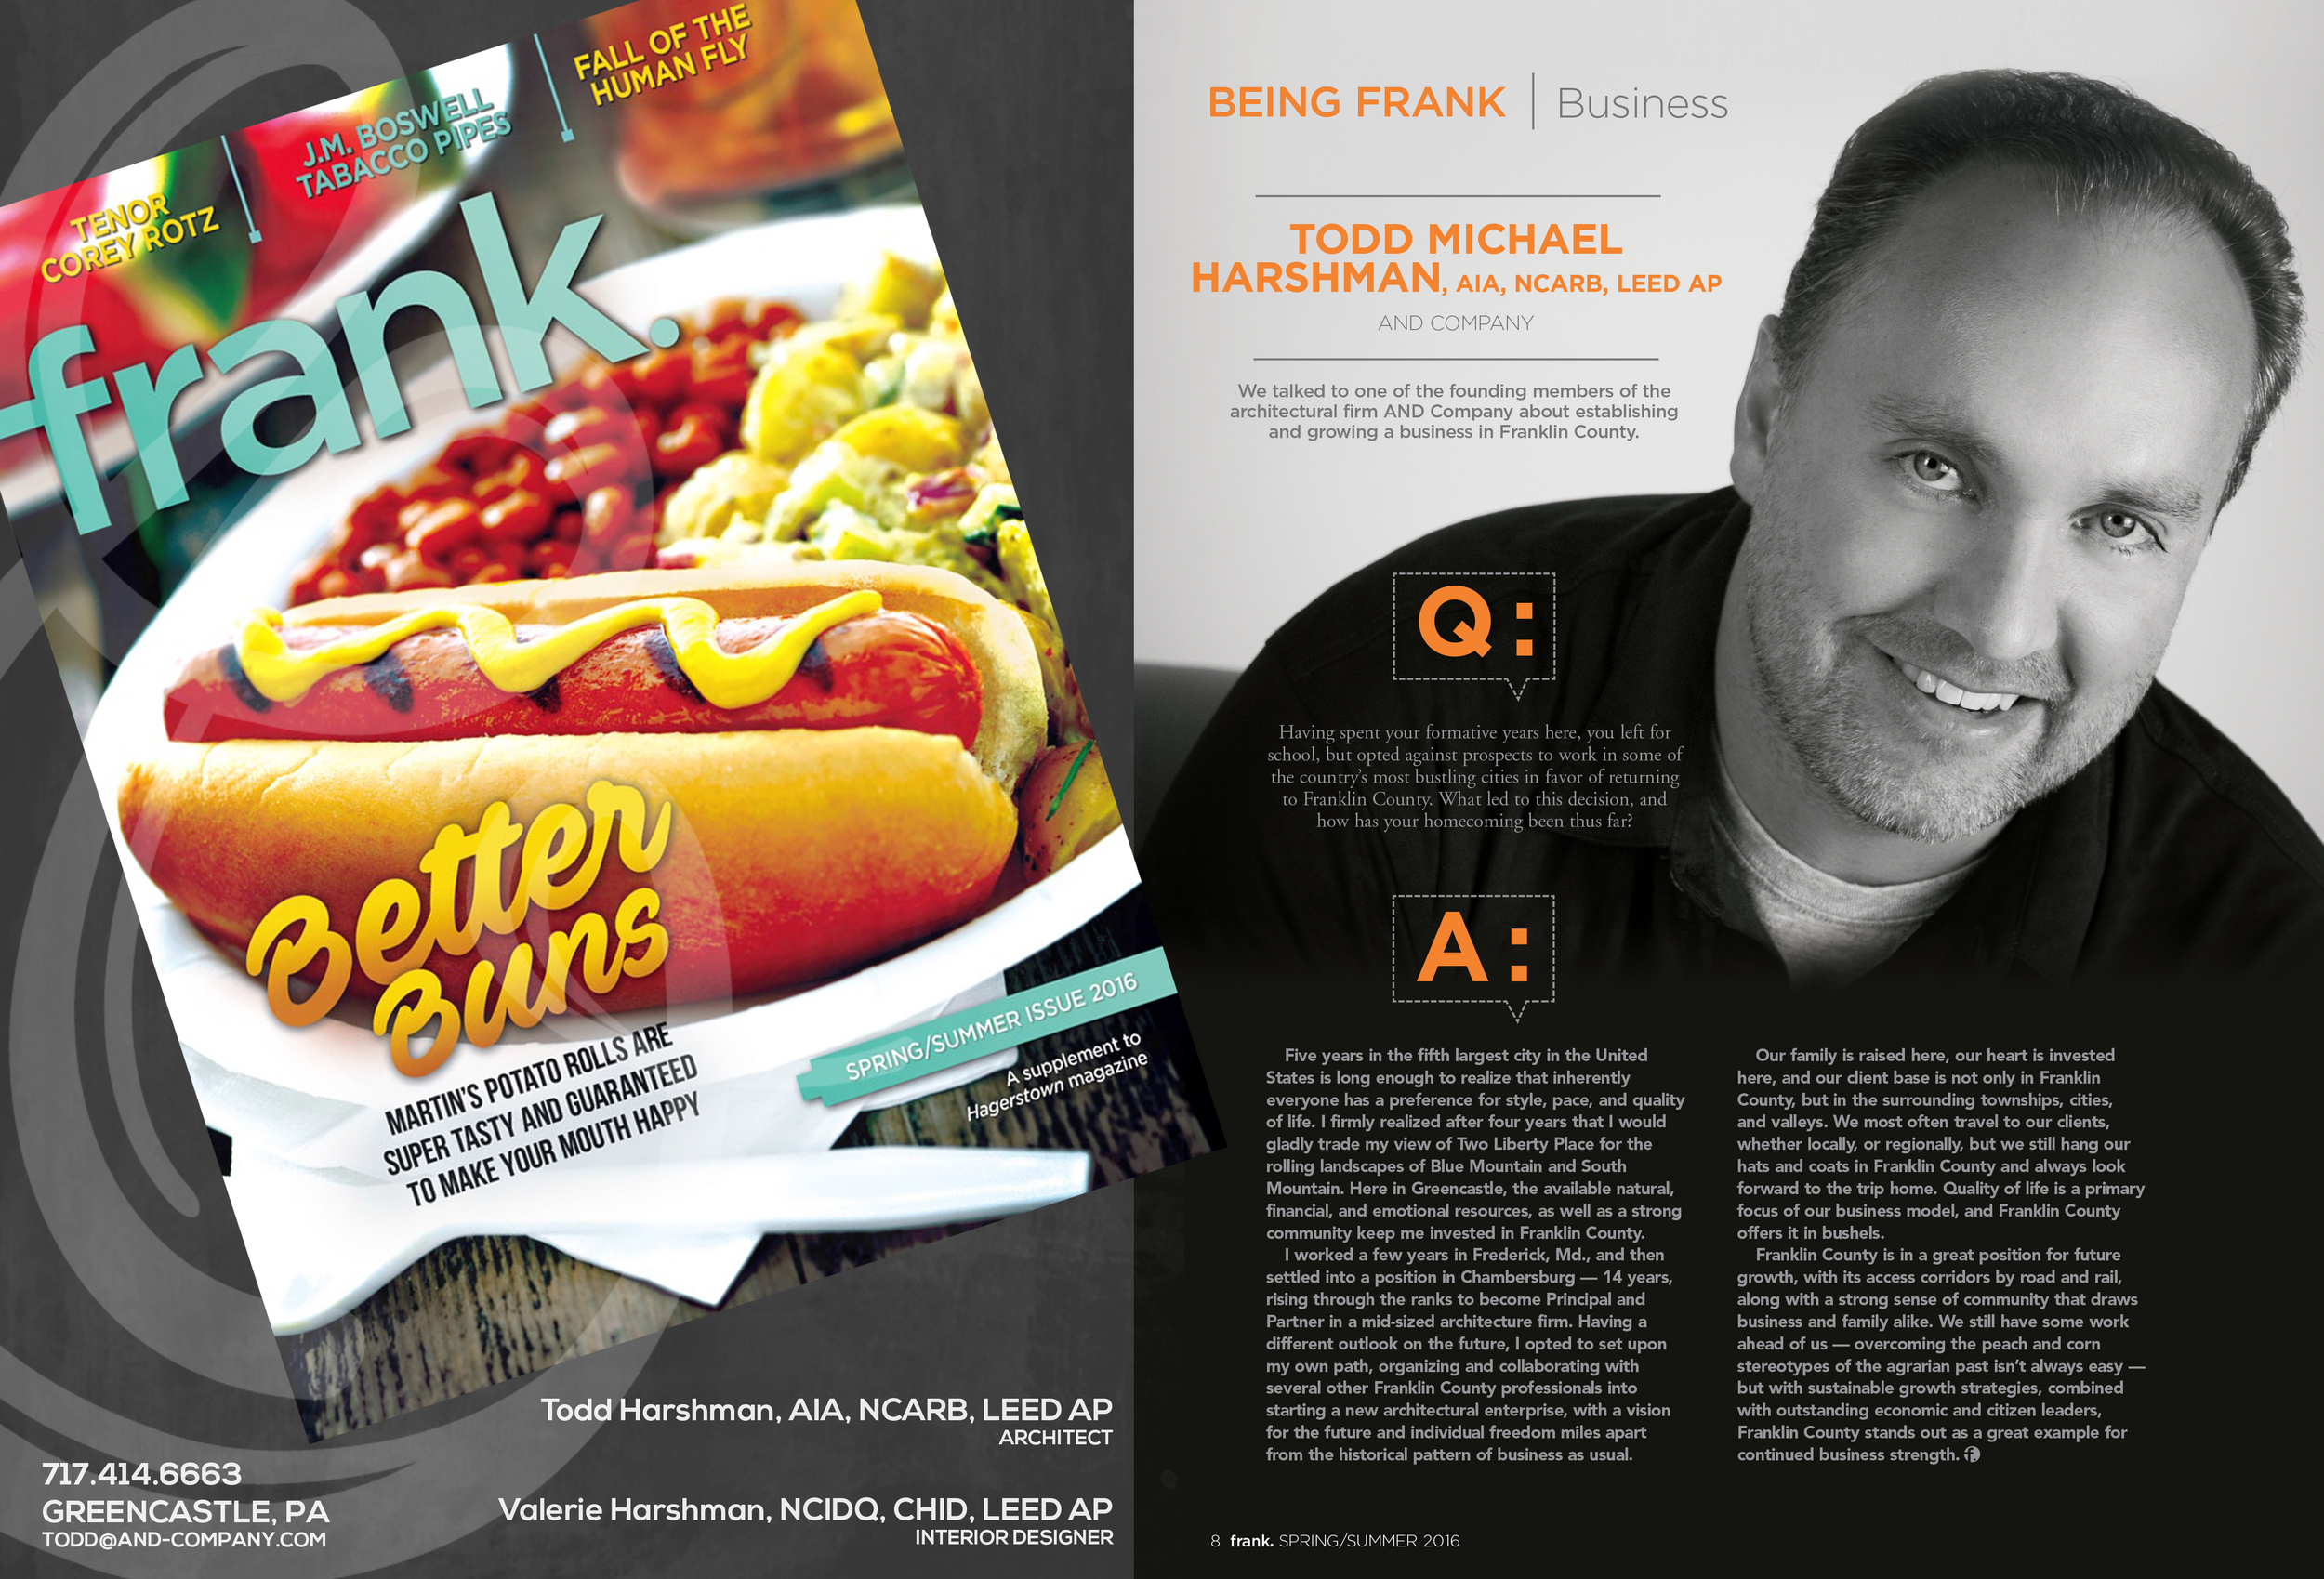 Principal Architect Todd Harshman interviewd in FRANK Magazine!